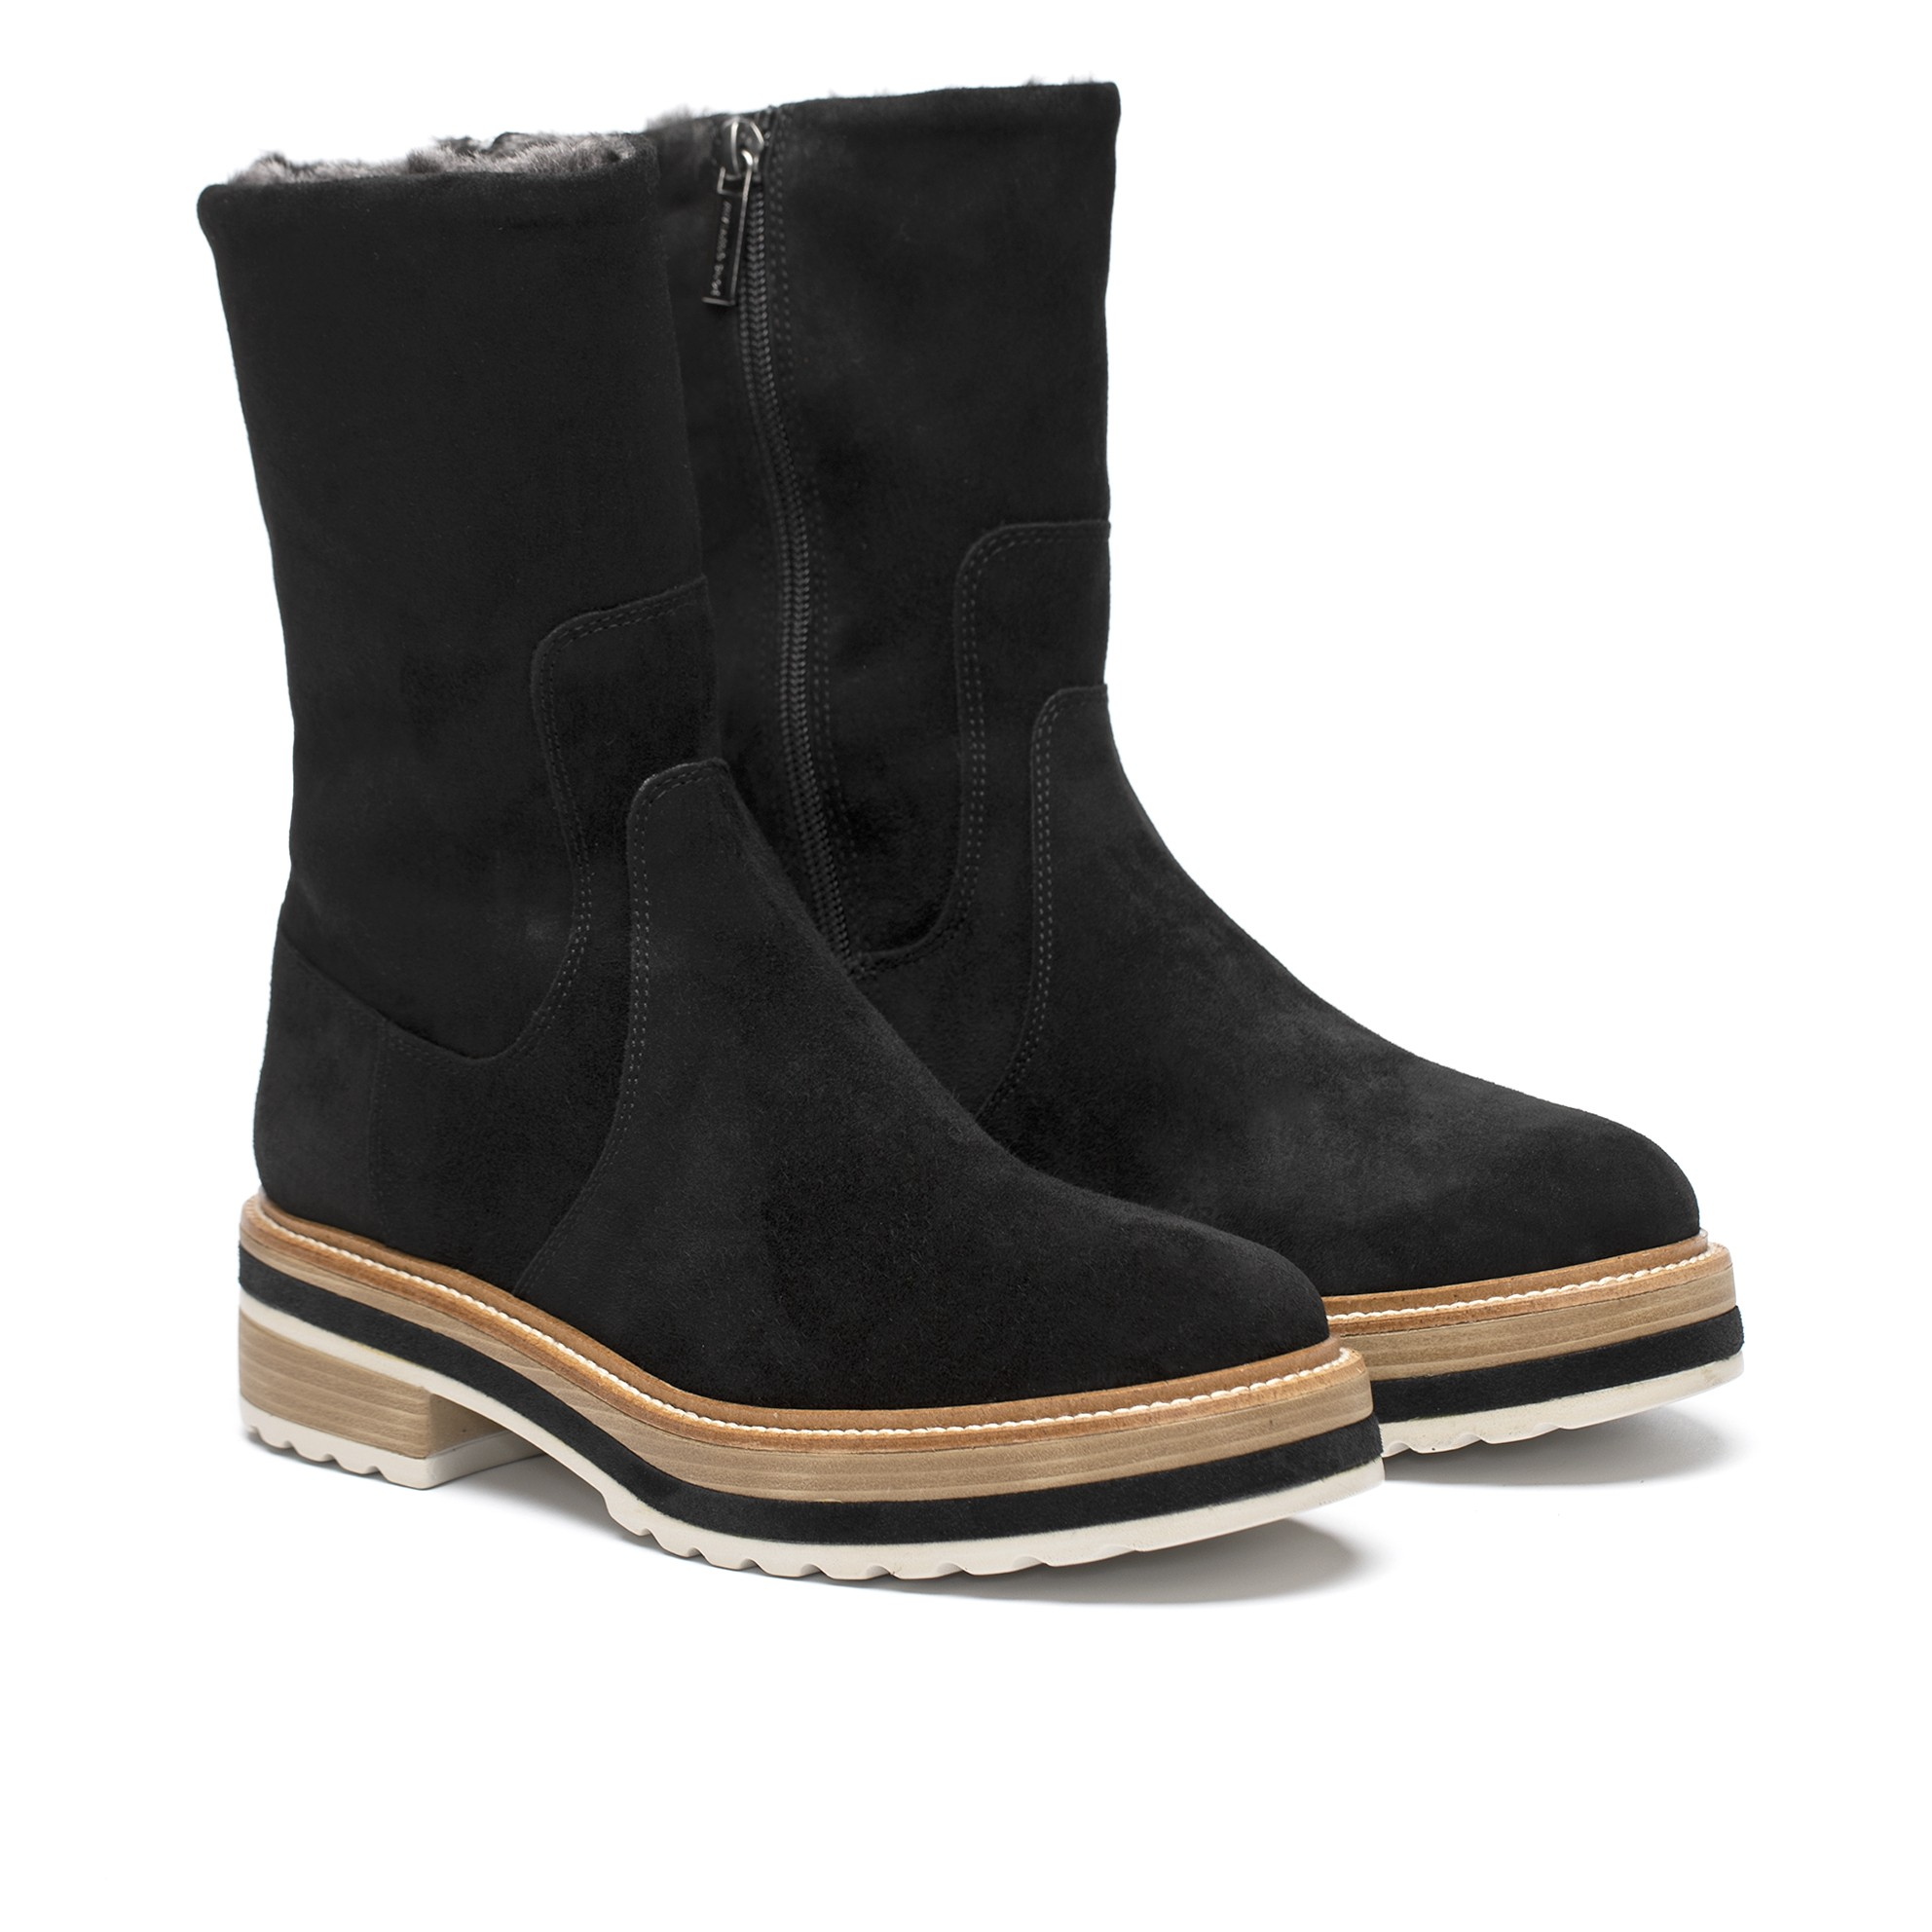 ANDREA BLACK VELOUR FLAT BOOT